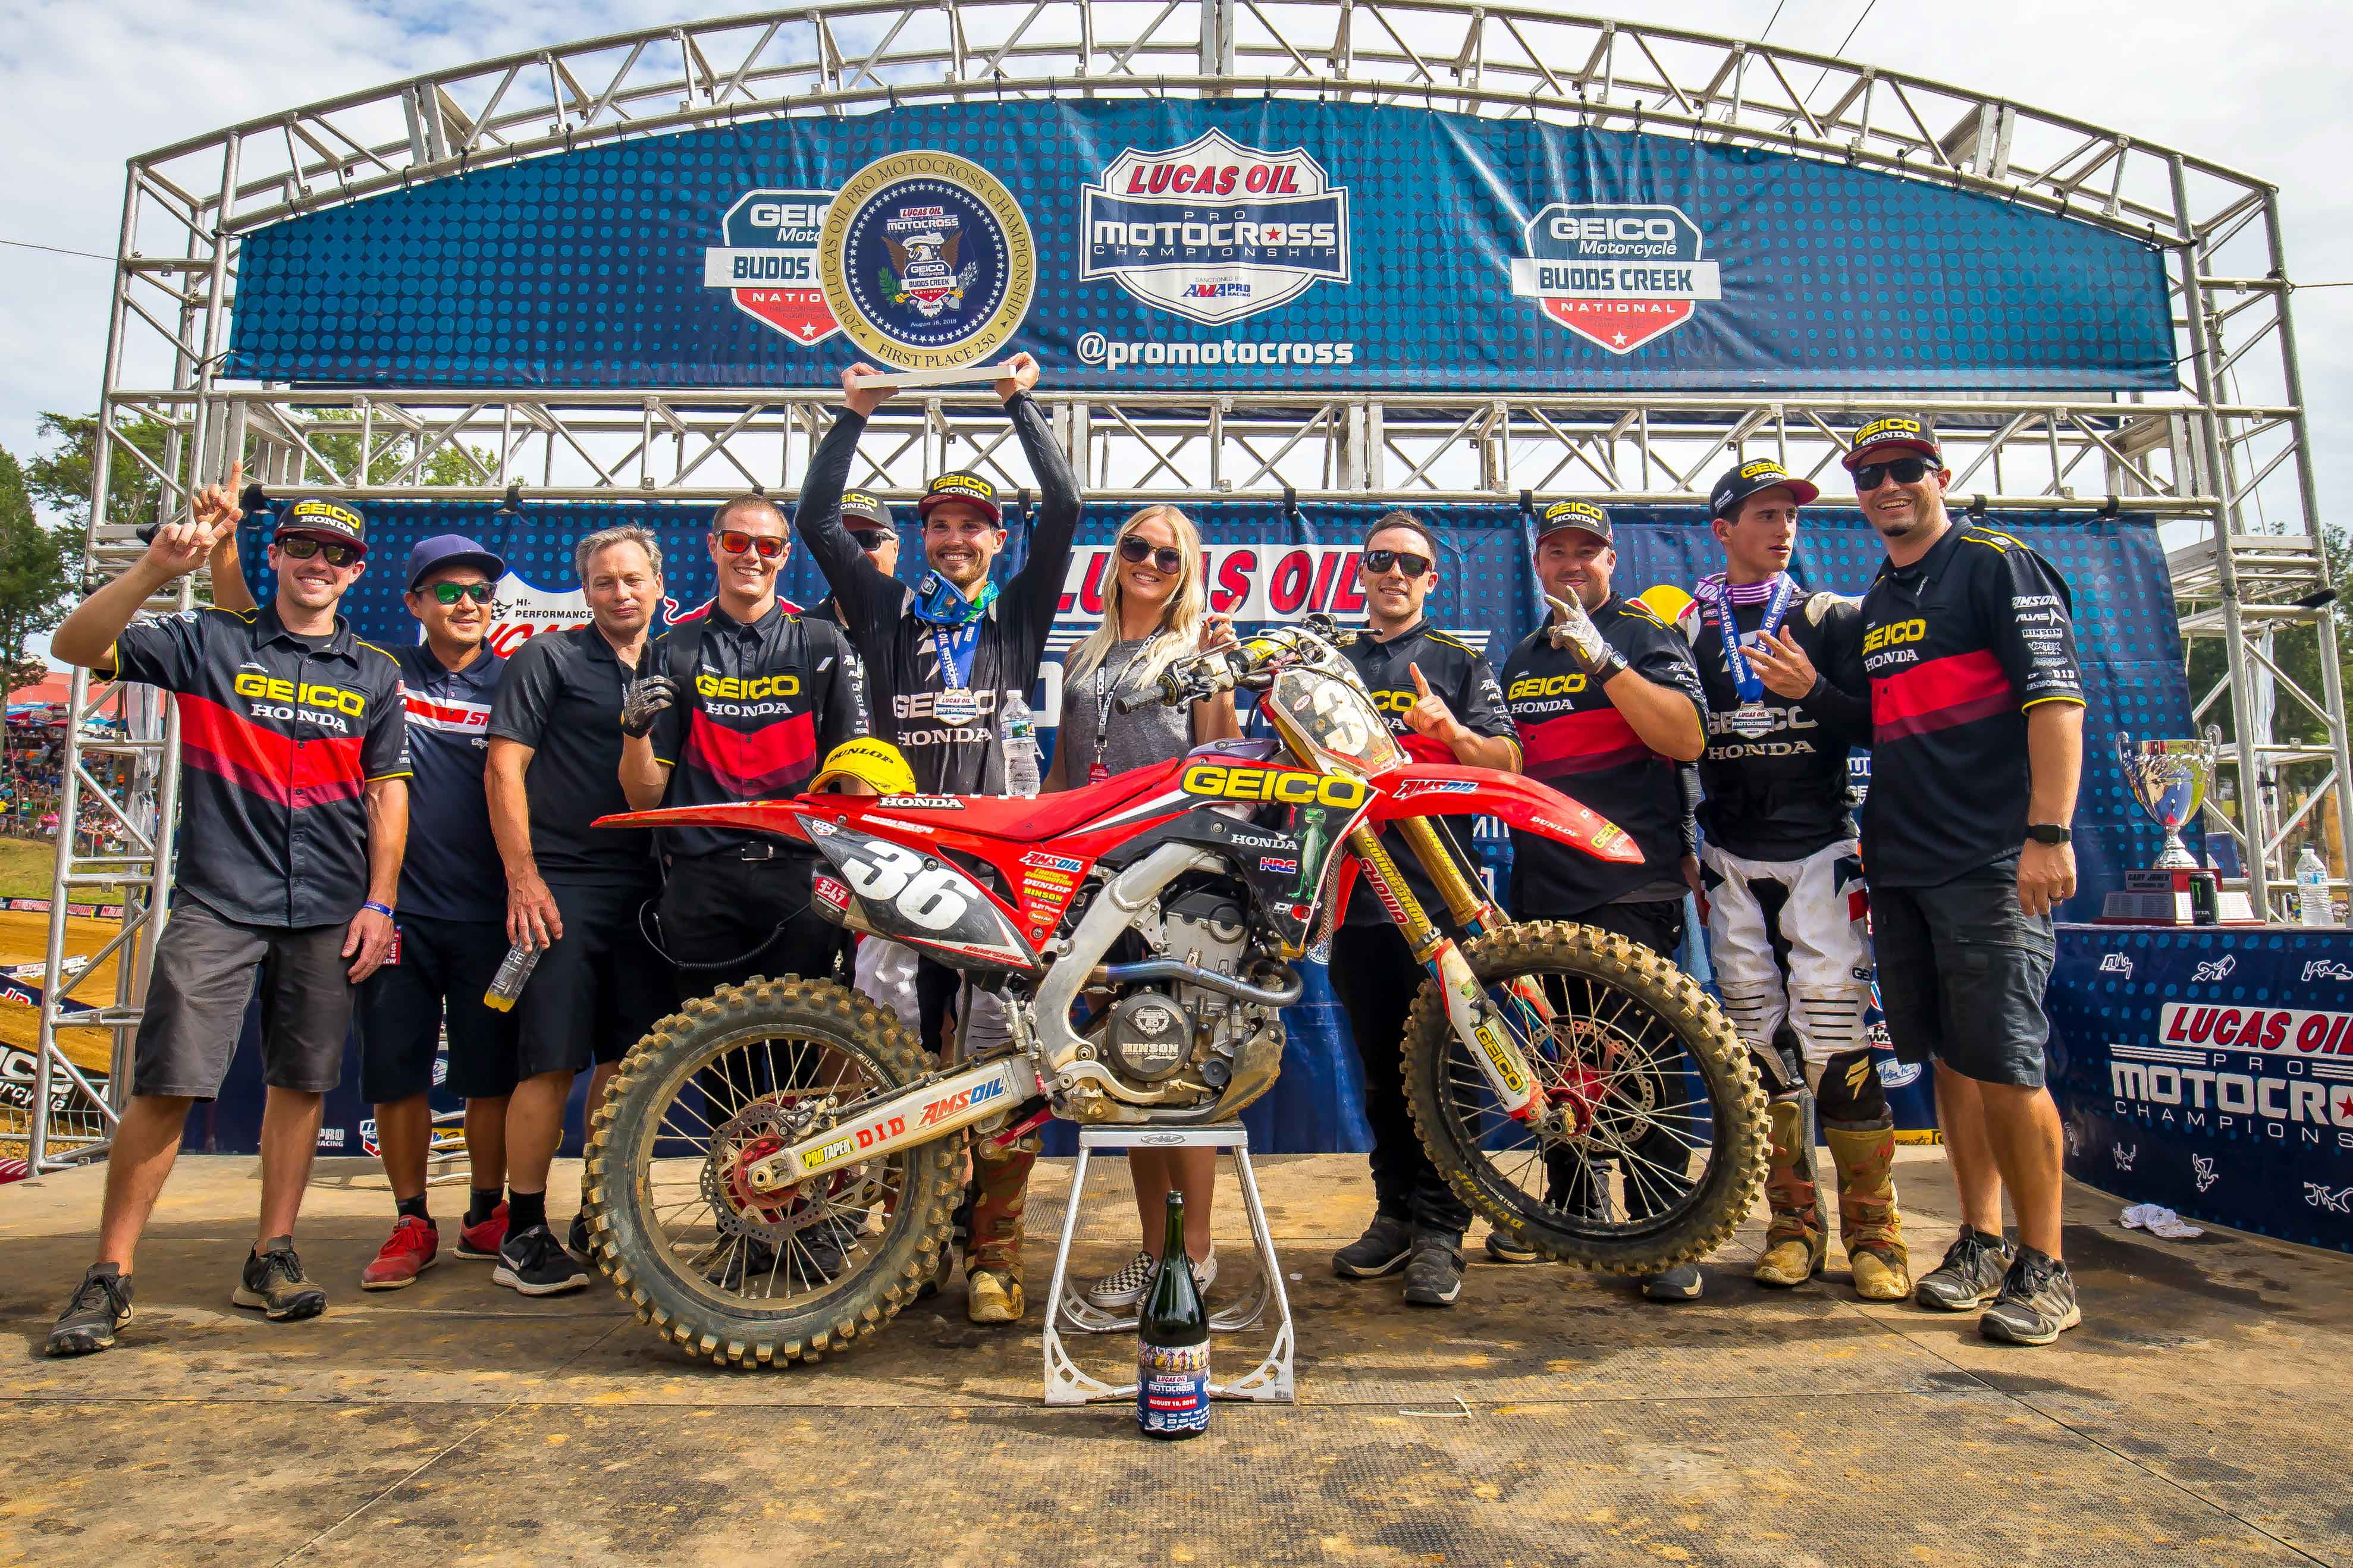 Hampshire Budds Creek Victory